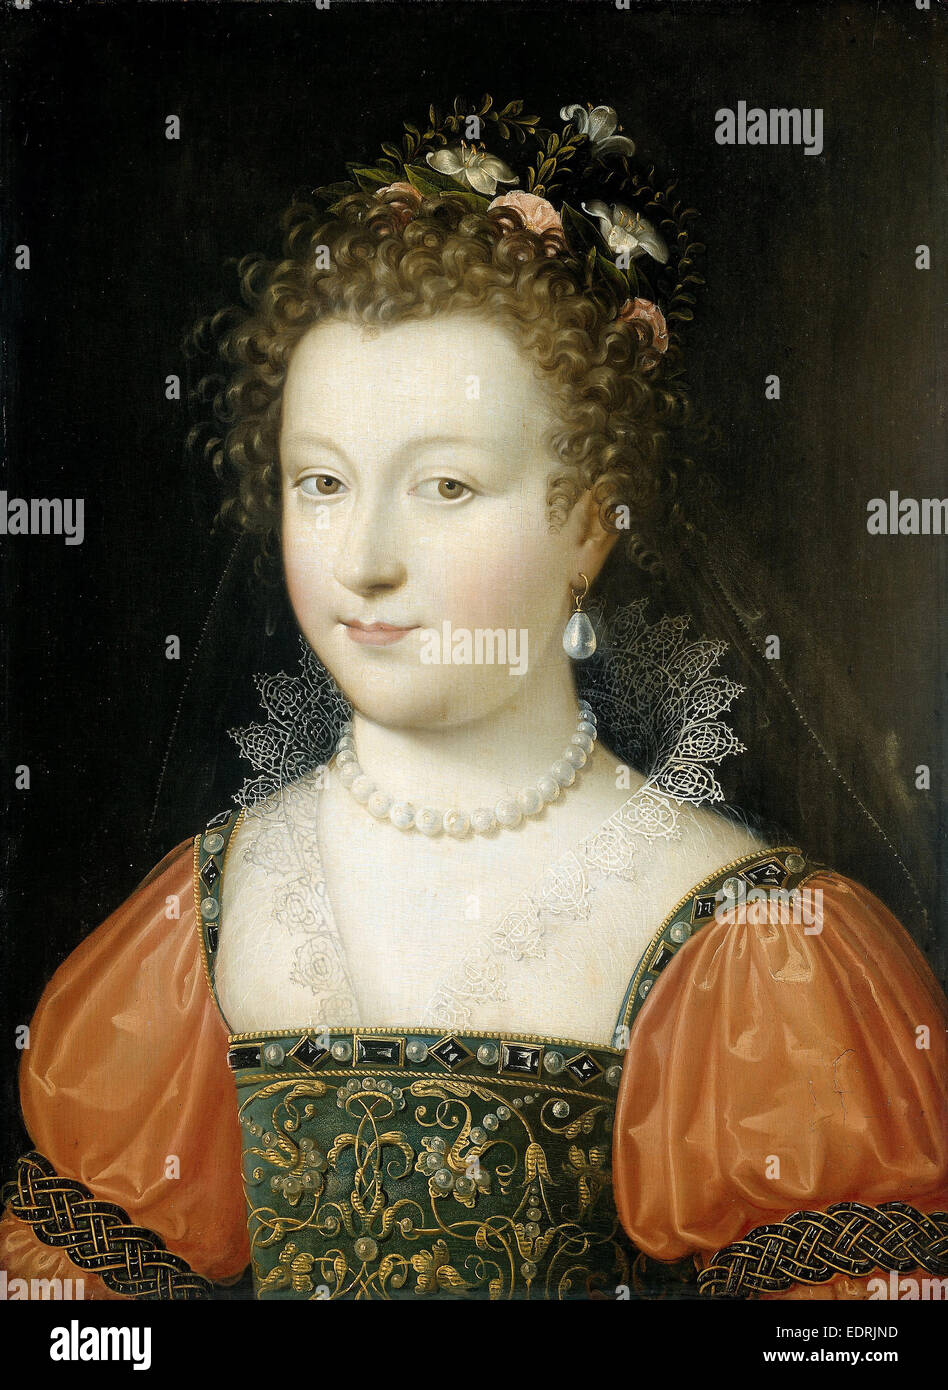 Portrait of a Woman (previously identified as Queen Elizabeth I), Anonymous, 1550 - 1574 - Stock Image